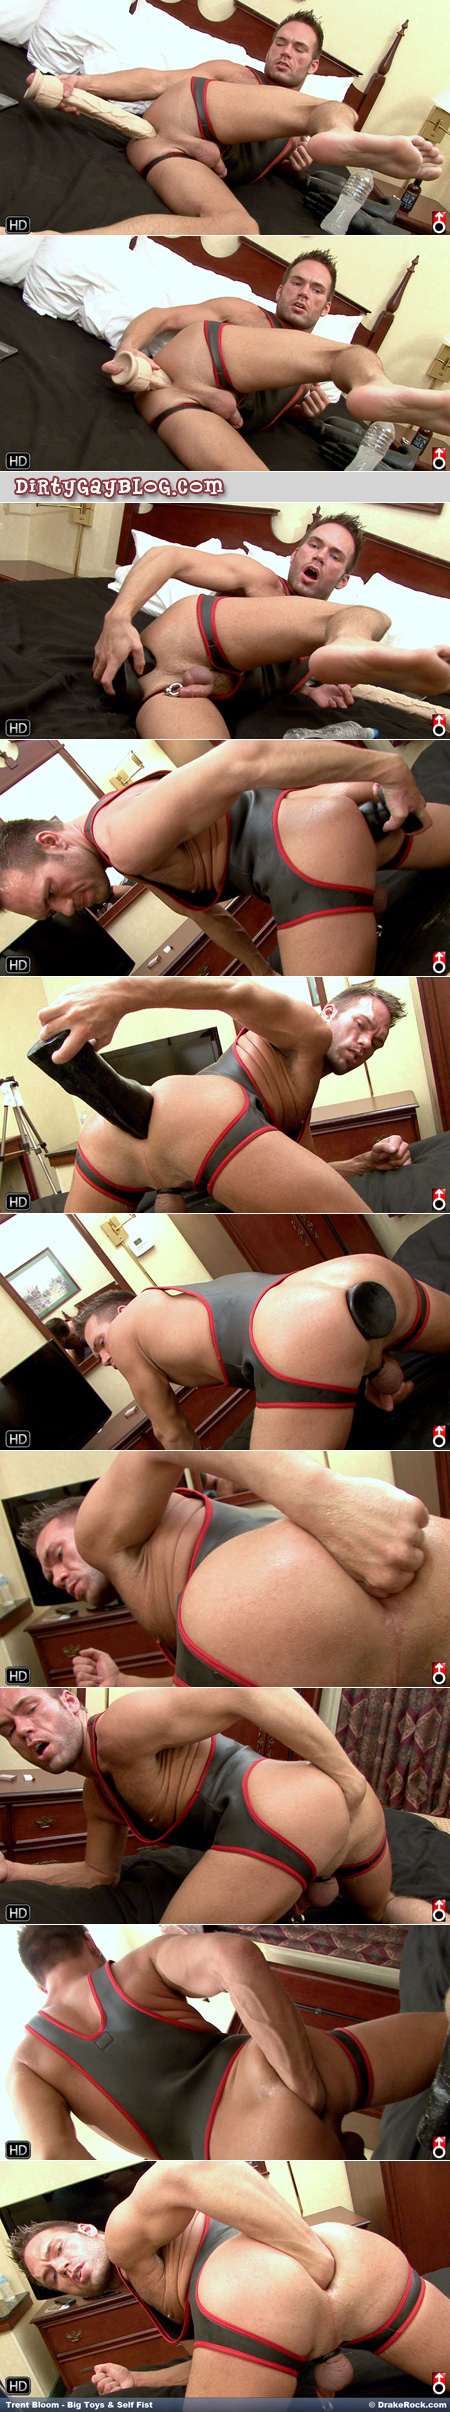 Man in a rubber singlet is able to be fucked by giant dildoes and his own fist in his ass.